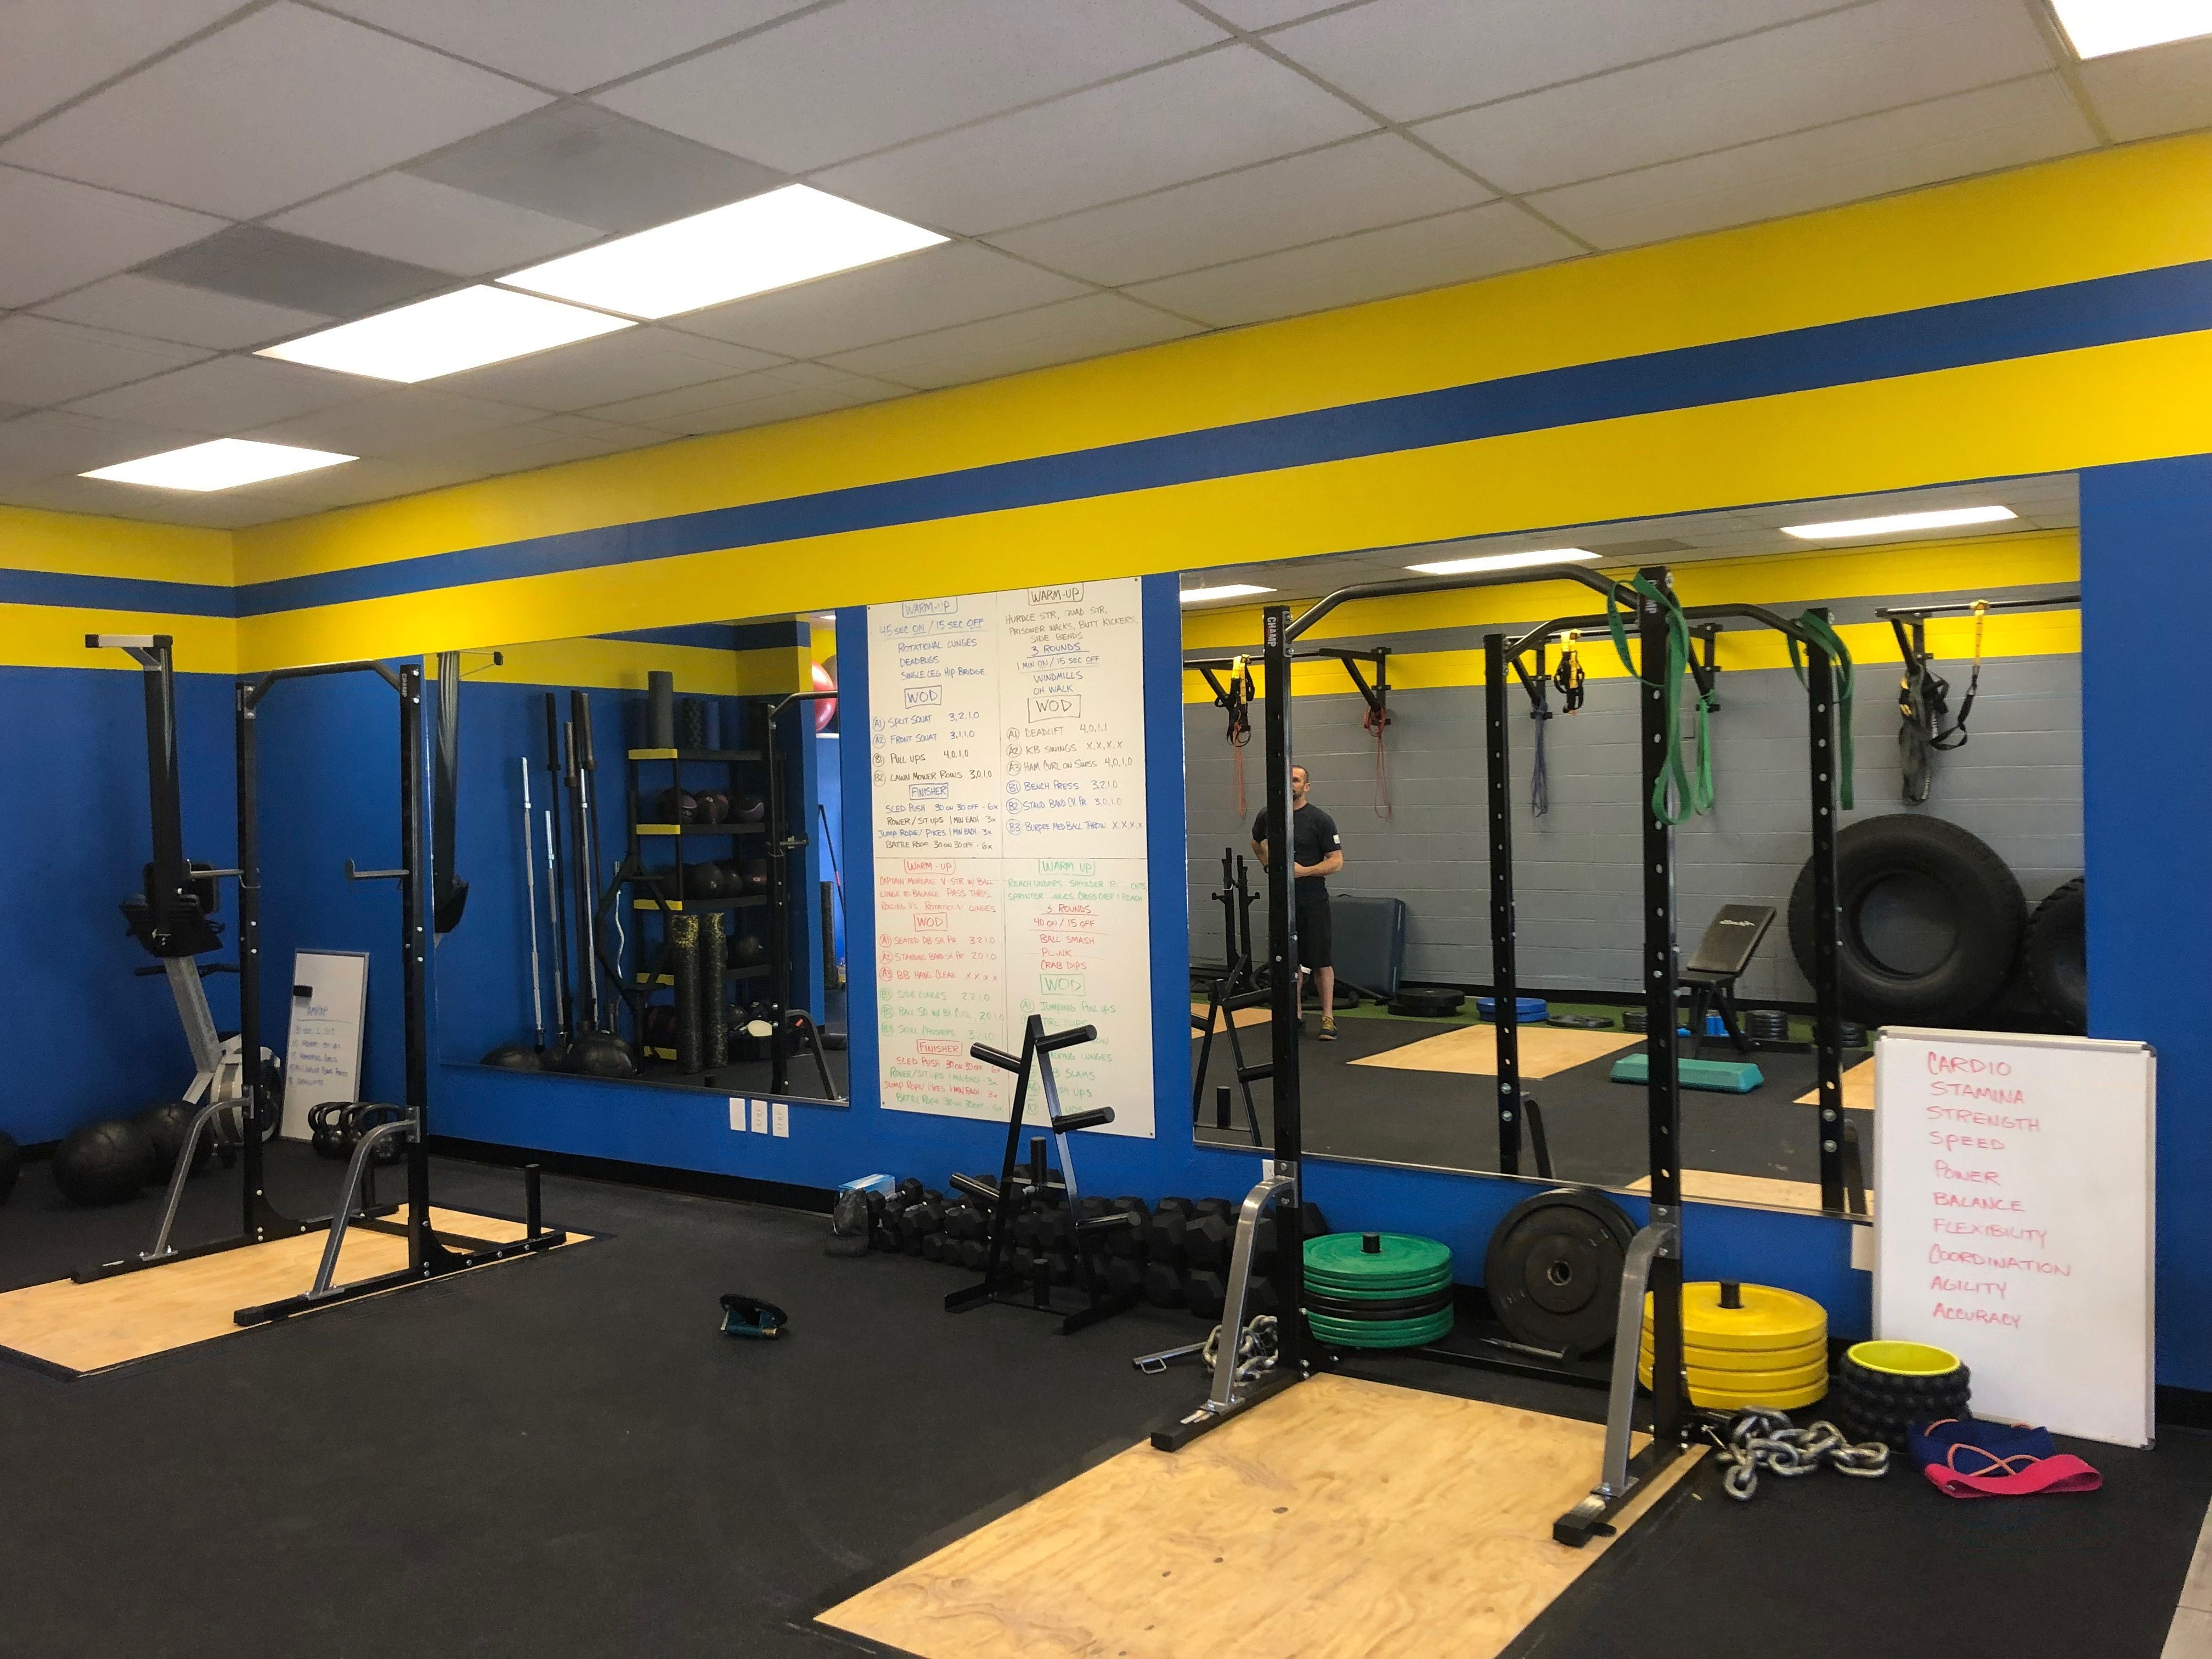 #Fitness #layout #Mirror #Personal #Studio Personal fitness studio mirror layout        Personal fit...